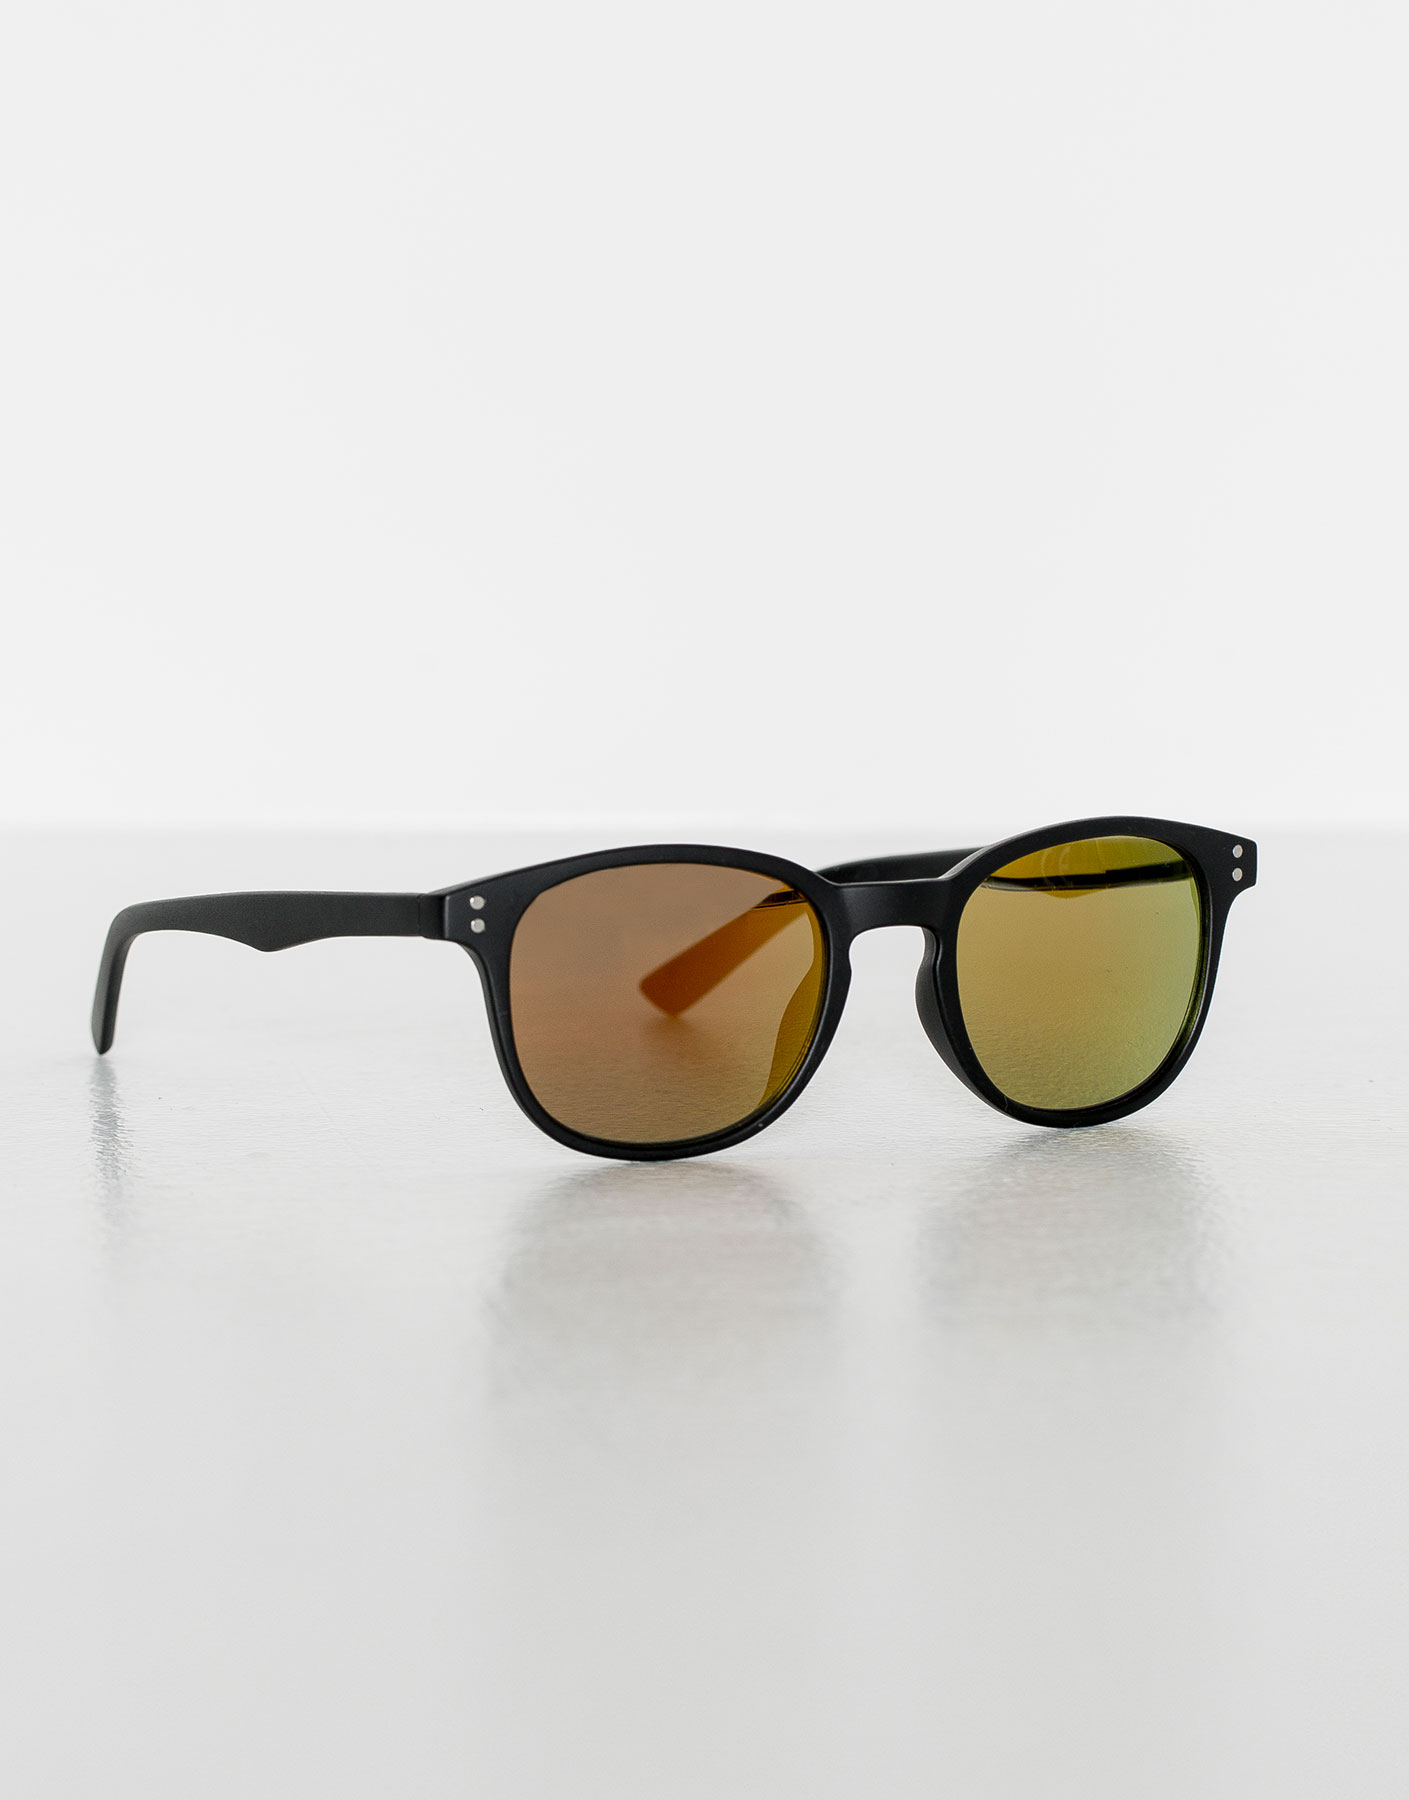 Black resin sunglasses with coloured lens